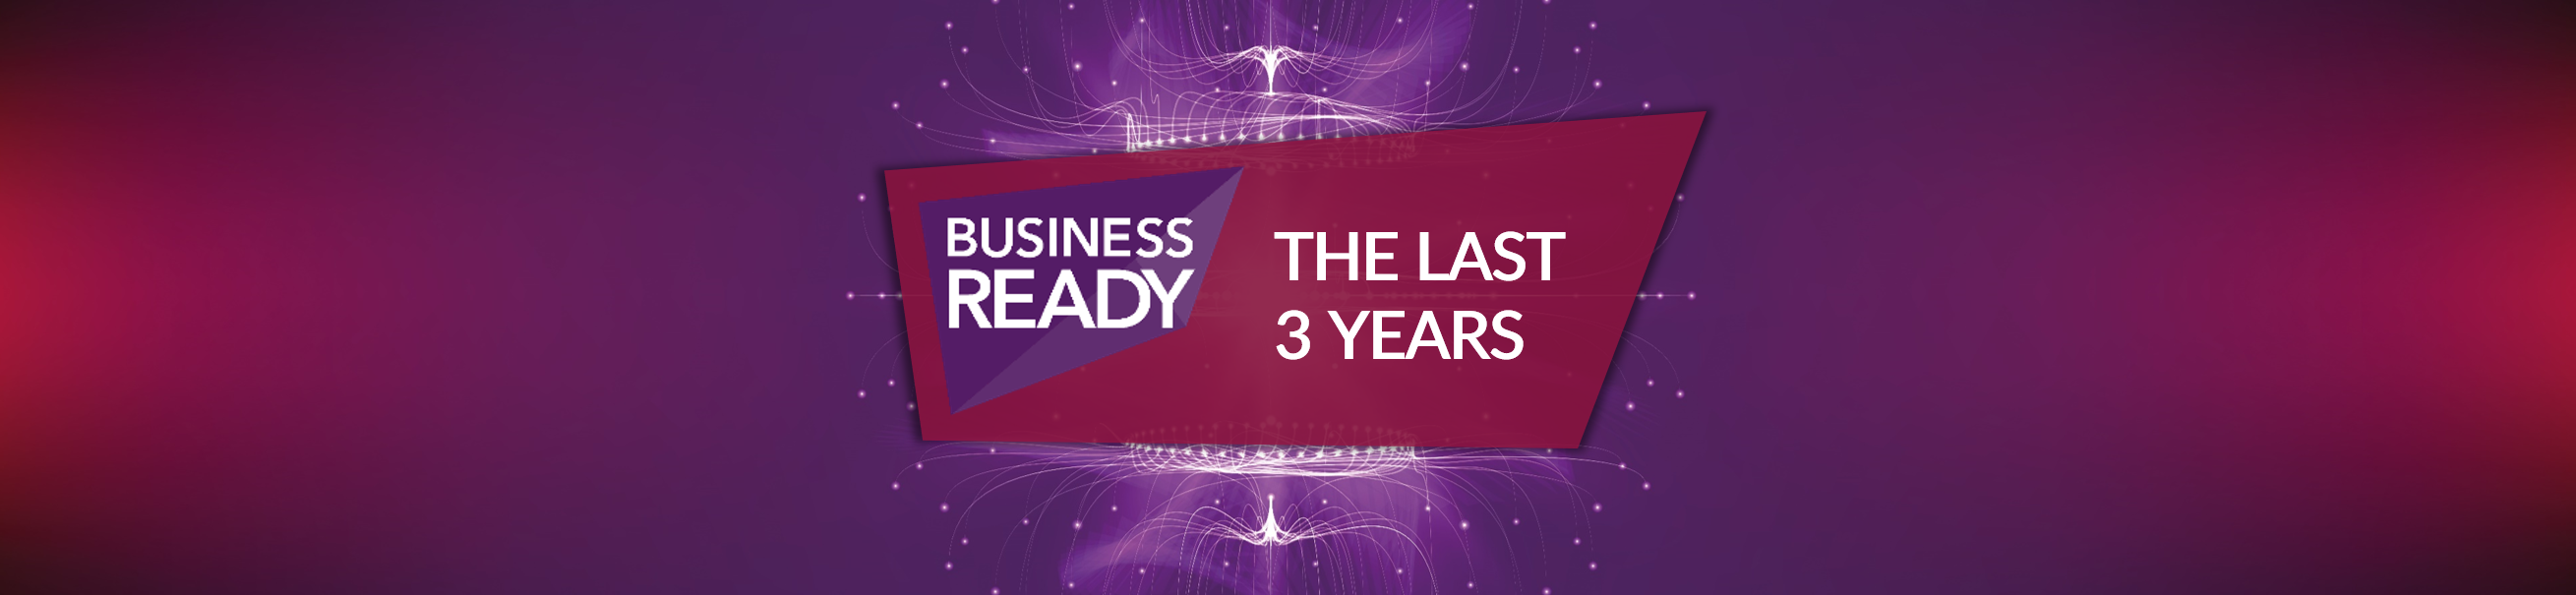 Business Ready – The last 3 years